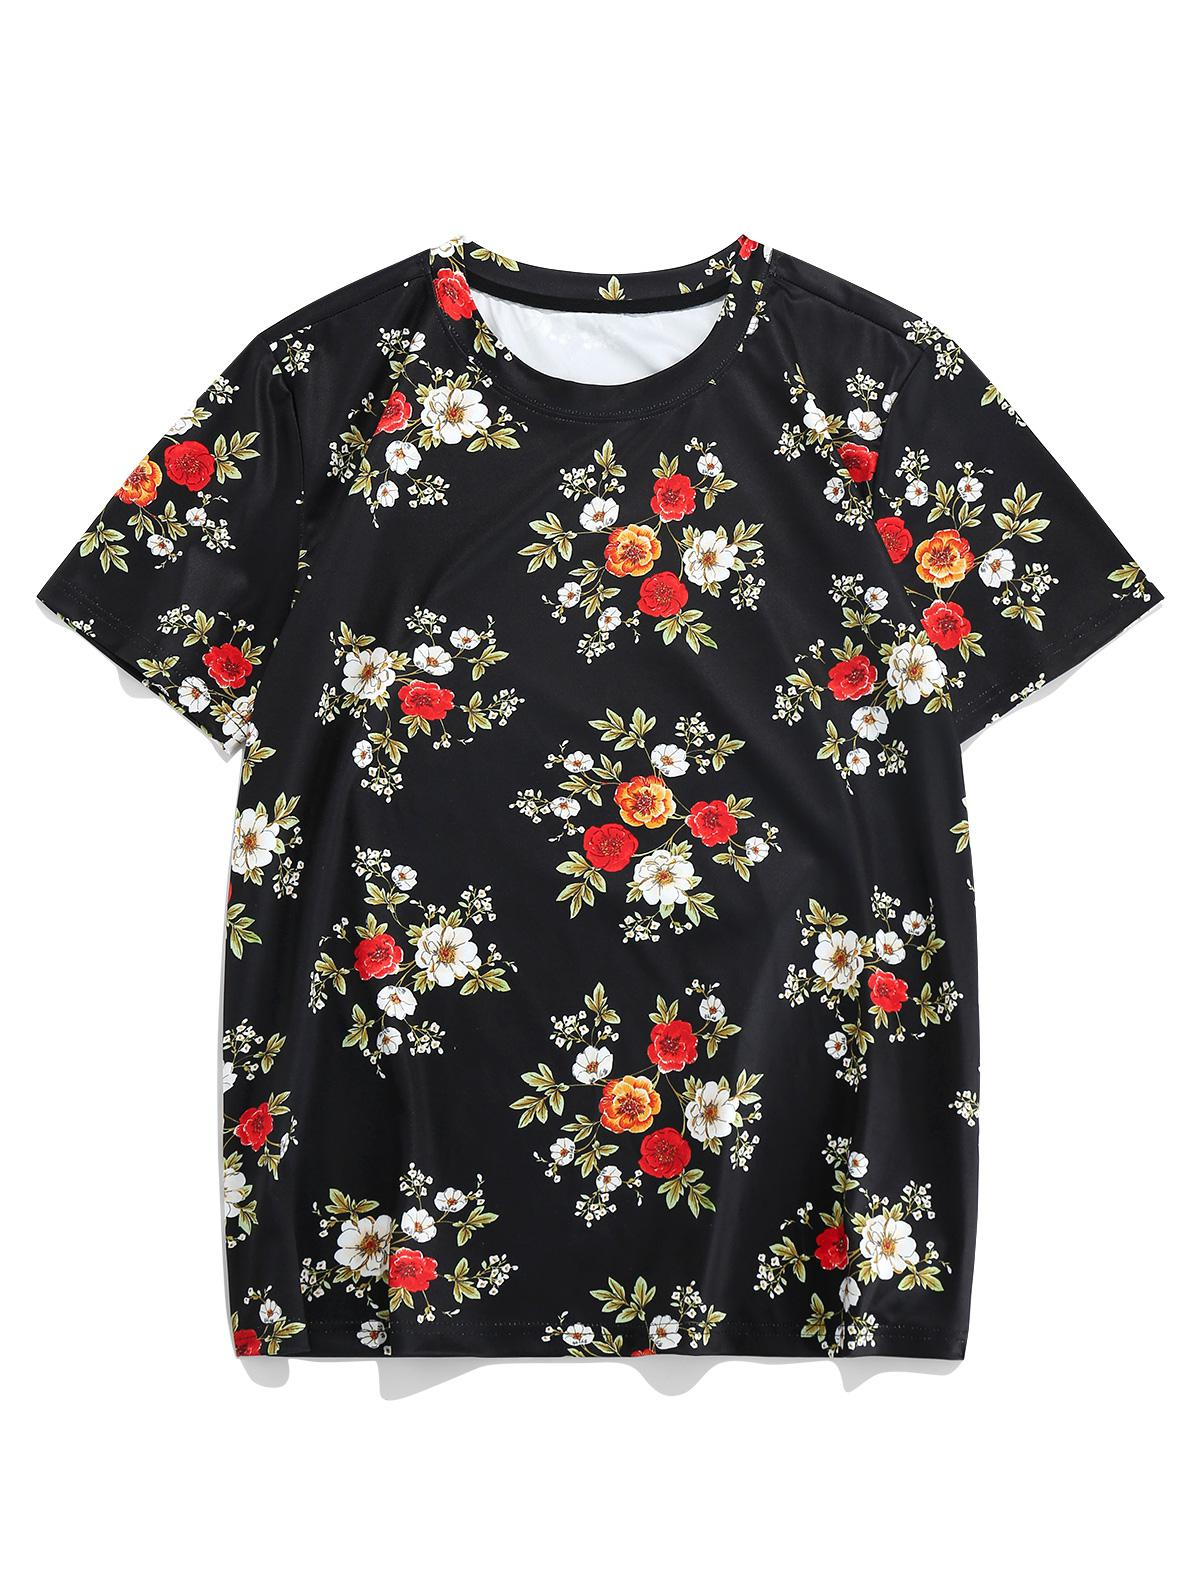 ZAFUL Flower Print Short Sleeves T-shirt фото